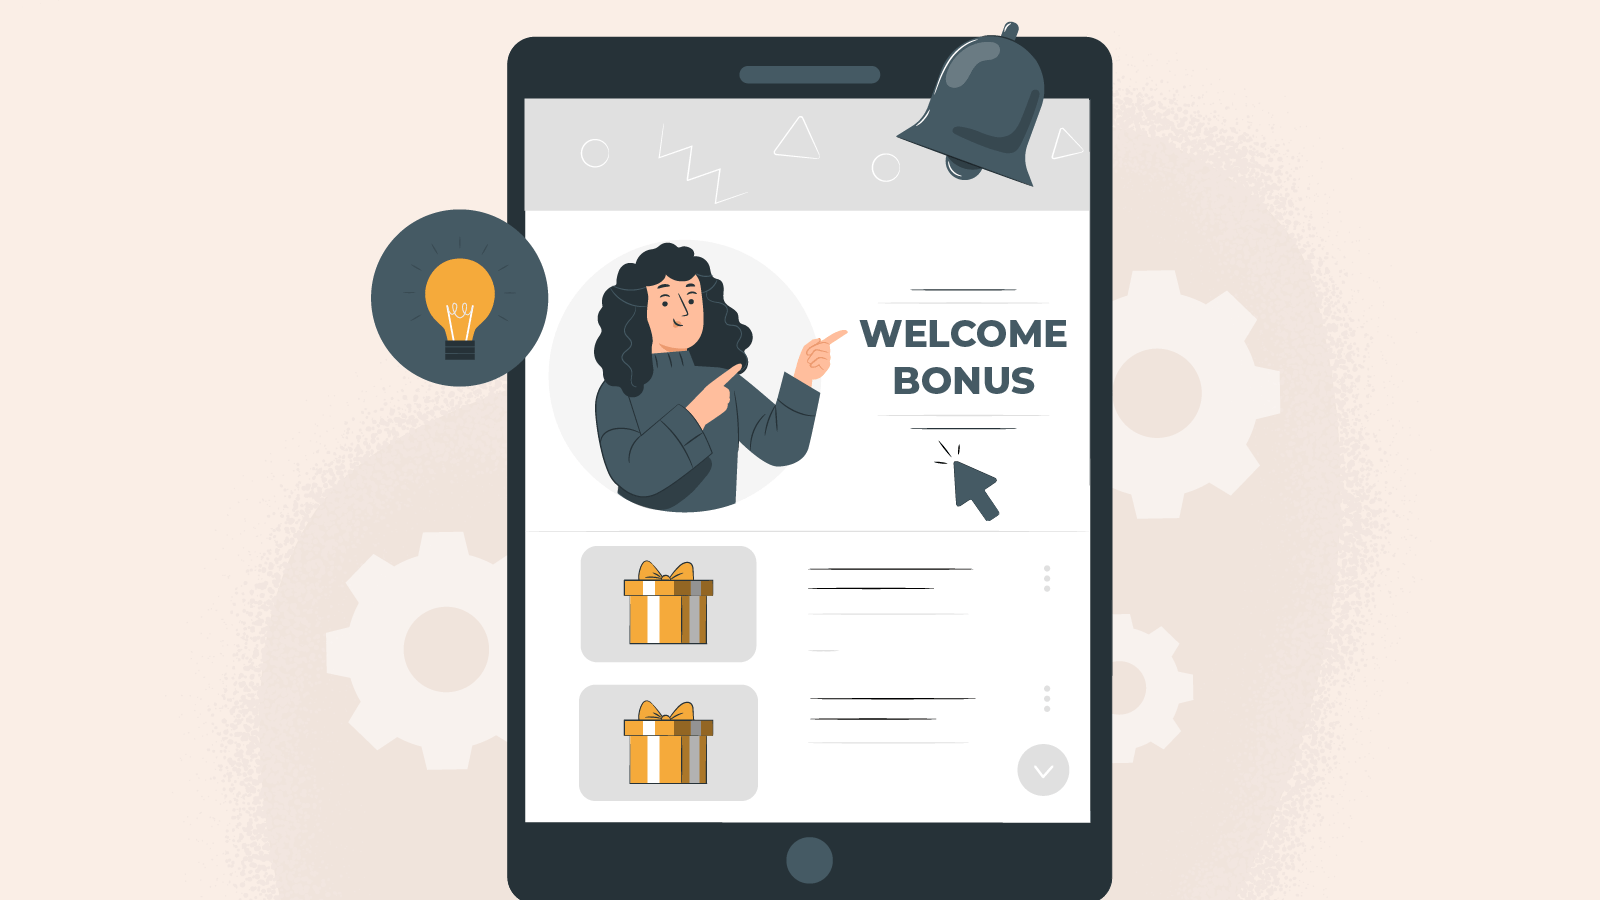 What is a welcome bonus